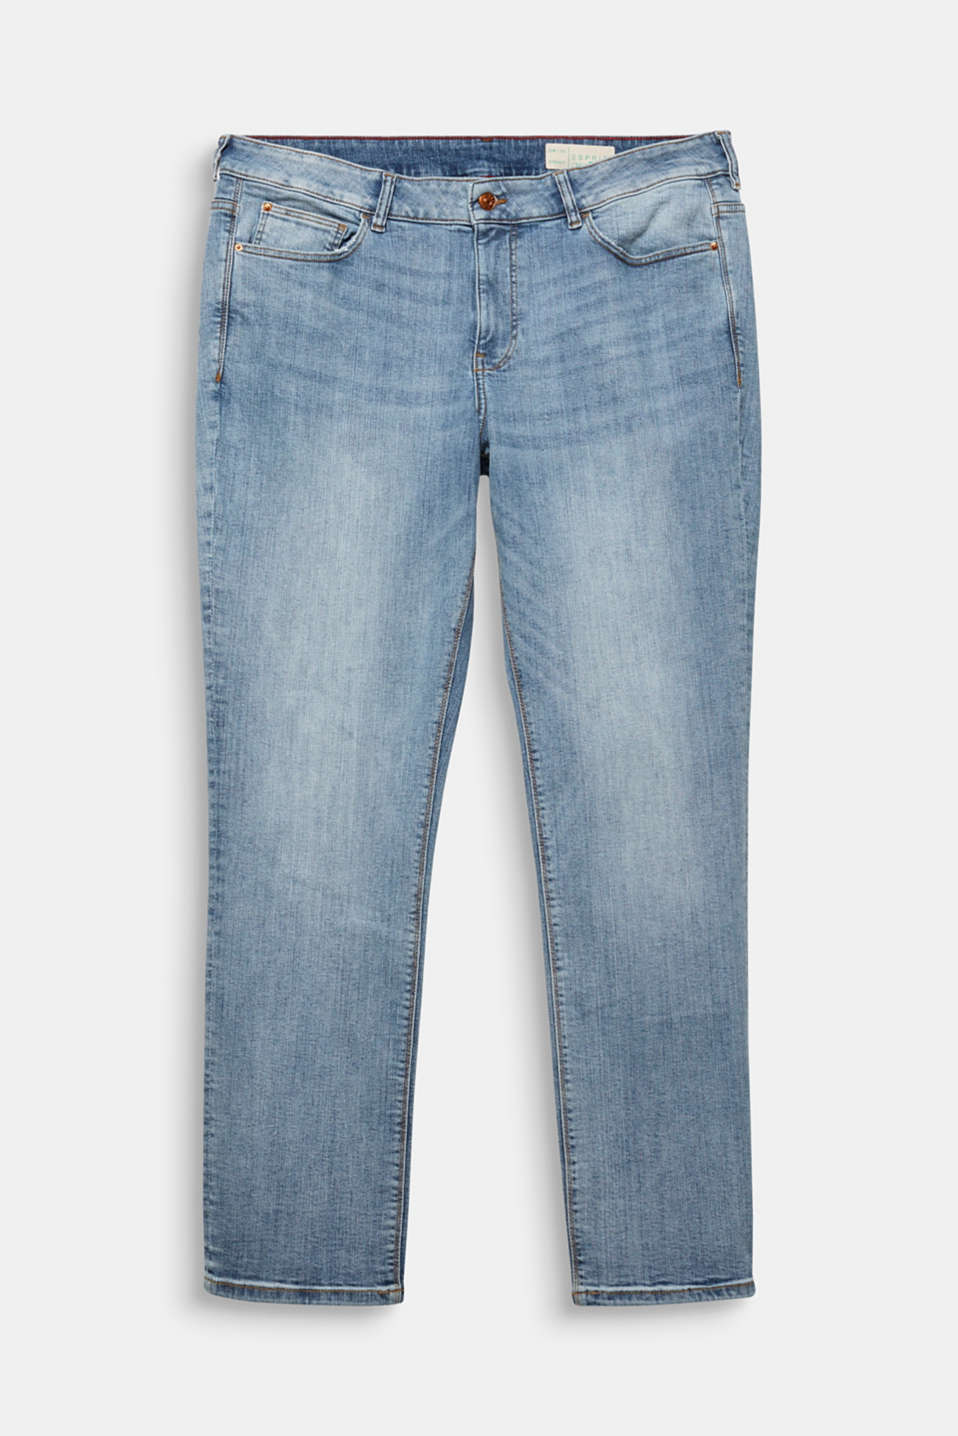 CURVY basic jeans with added stretch for comfort, BLUE LIGHT WASH, detail image number 7